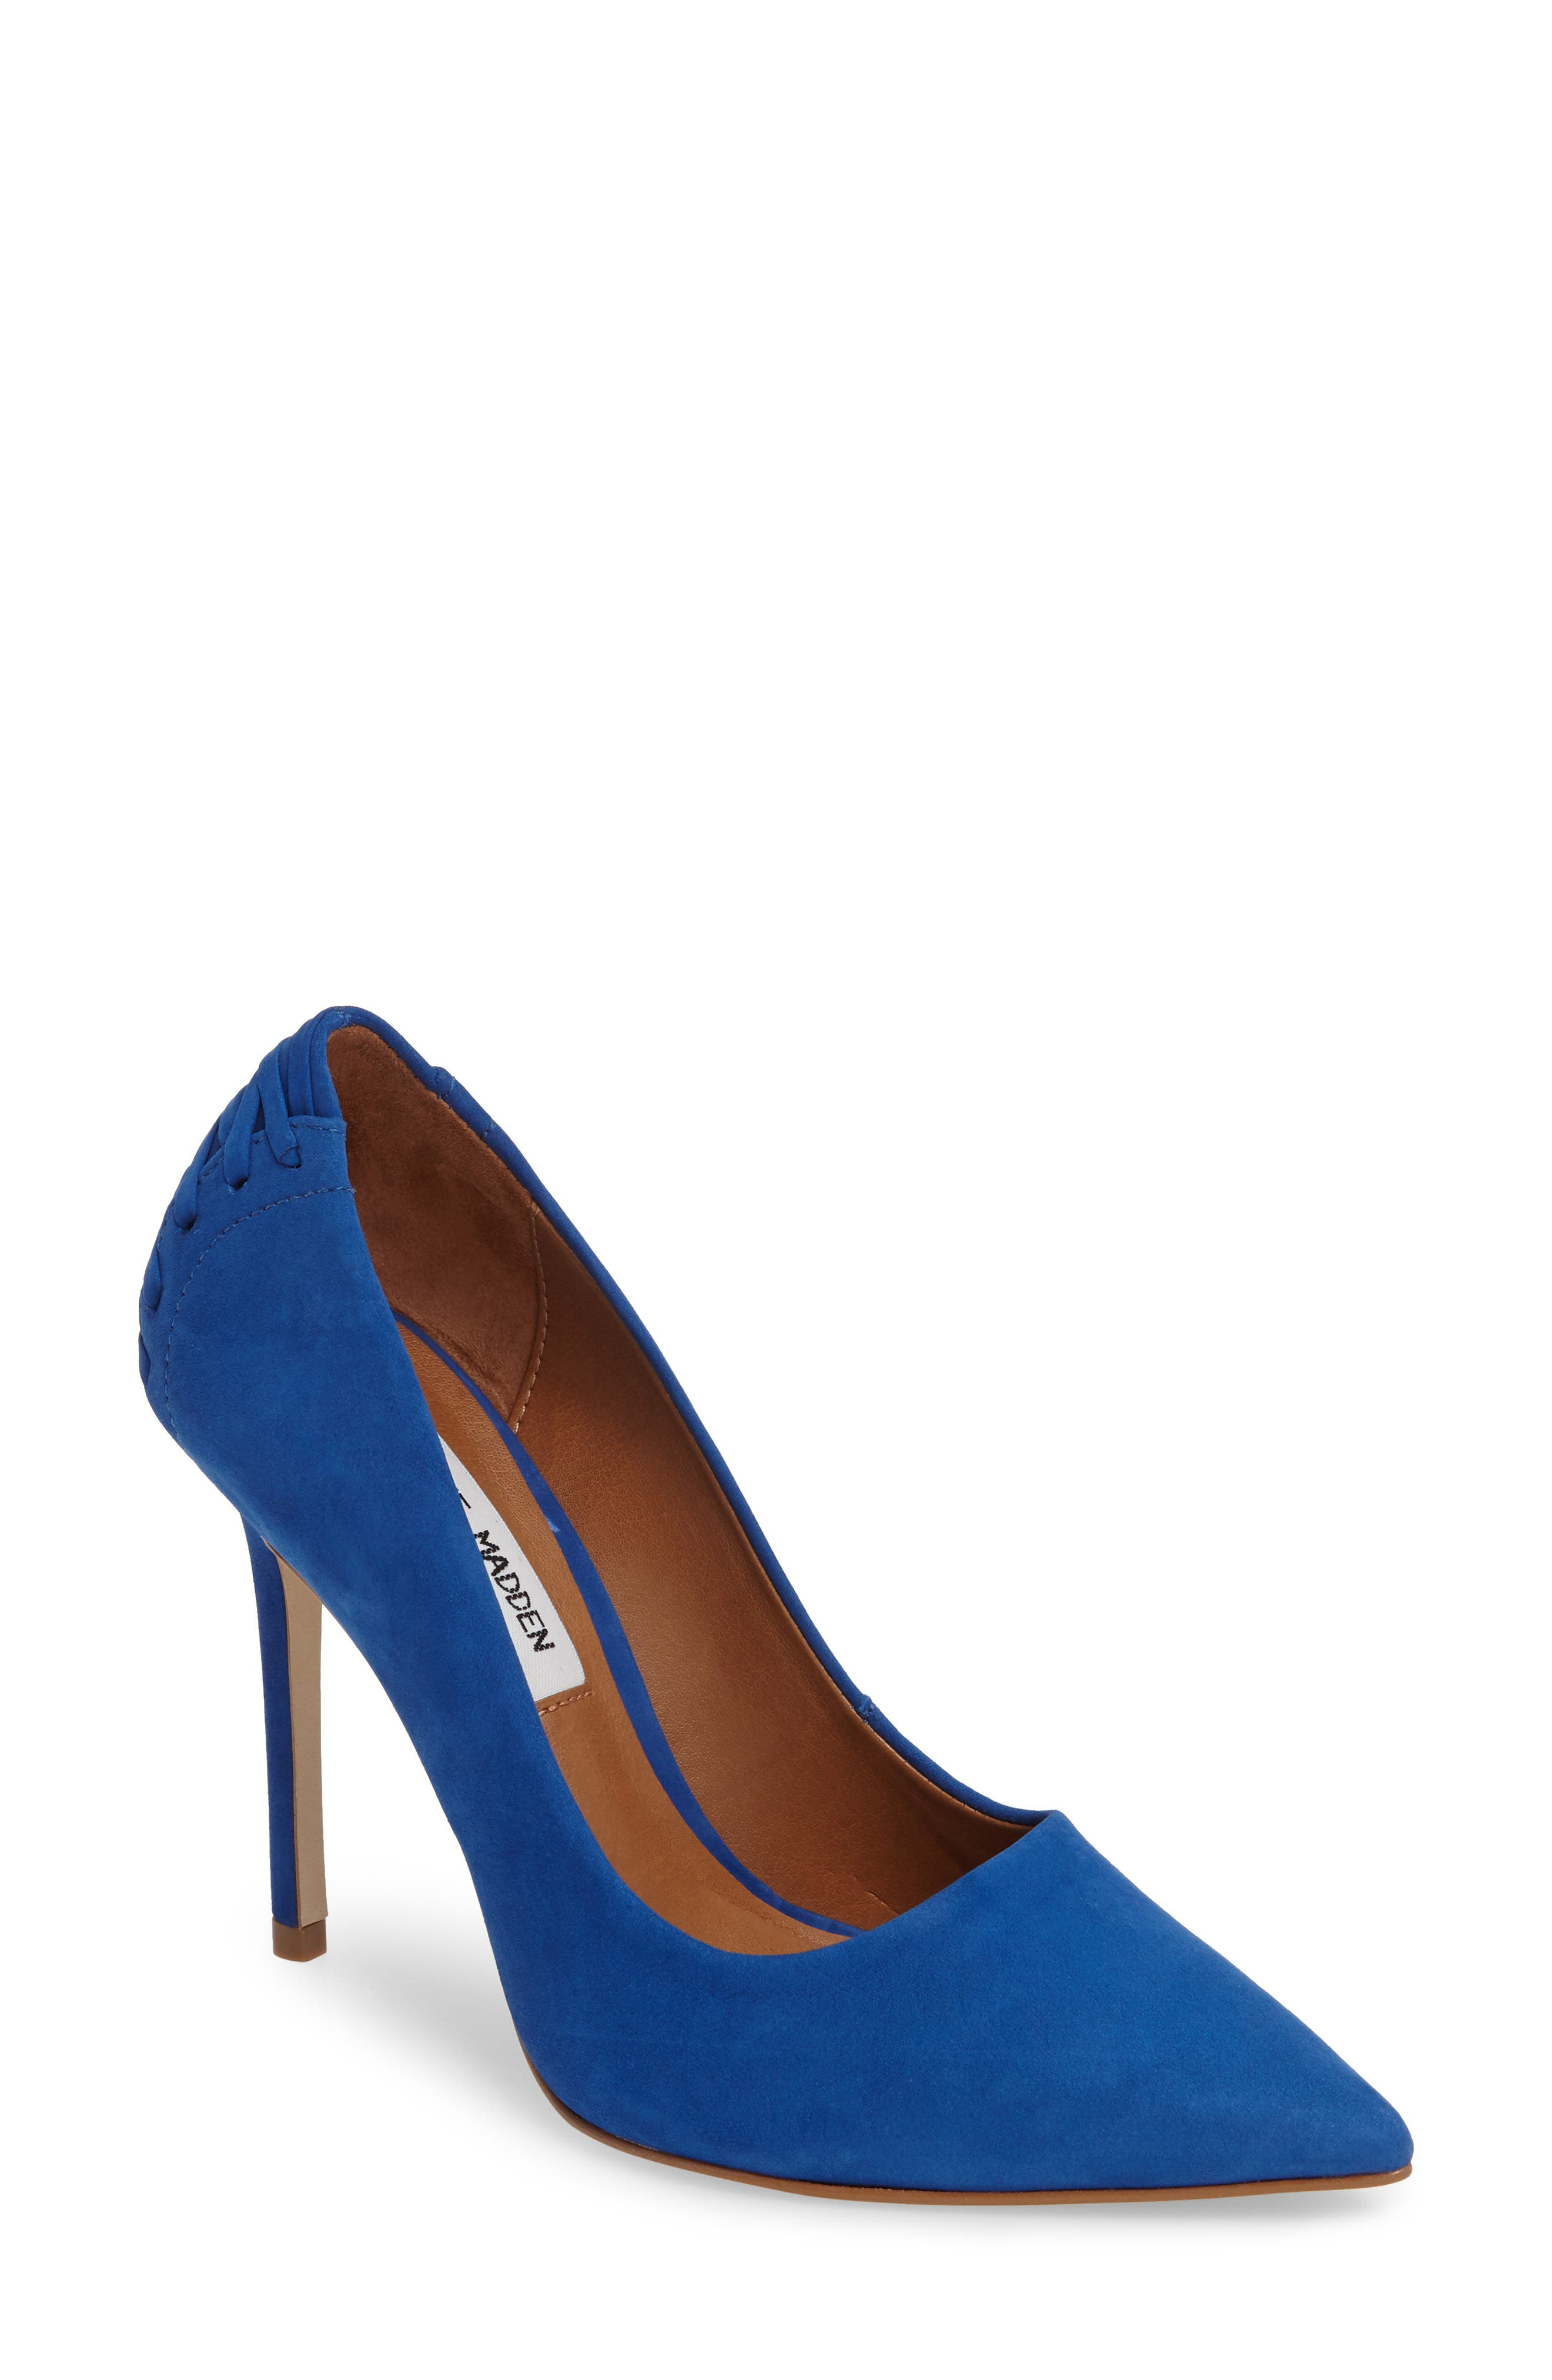 Paiton Laced Heel Pump,                             Main thumbnail 1, color,                             Blue Nubuck